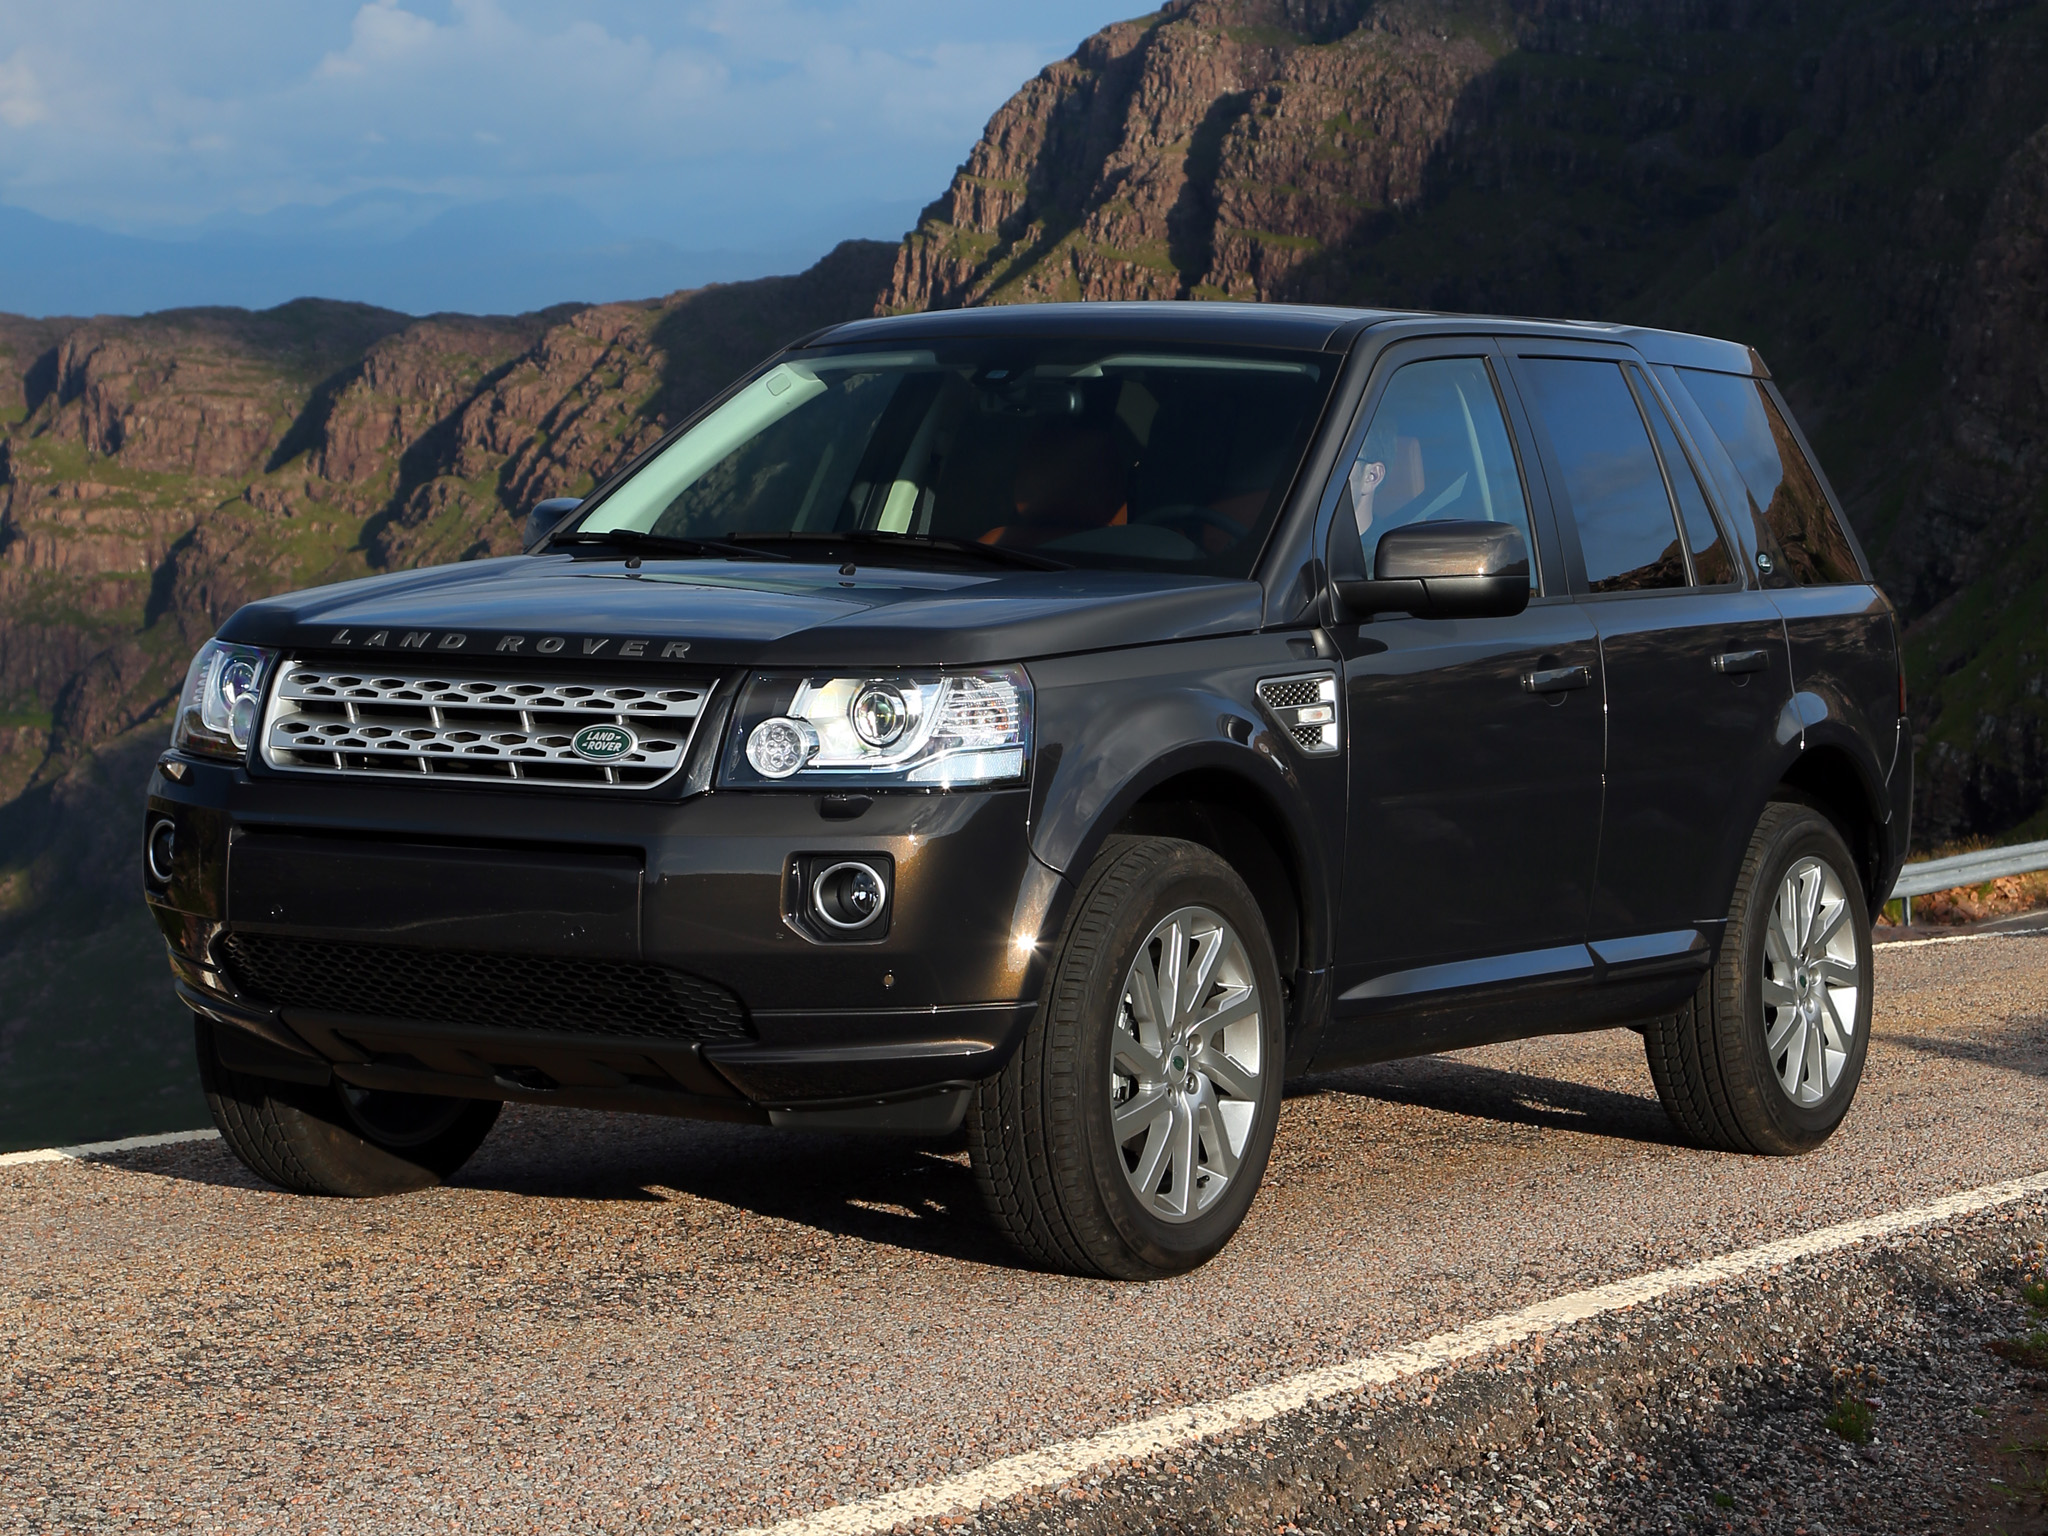 land rover freelander picture 94992 land rover photo gallery. Black Bedroom Furniture Sets. Home Design Ideas